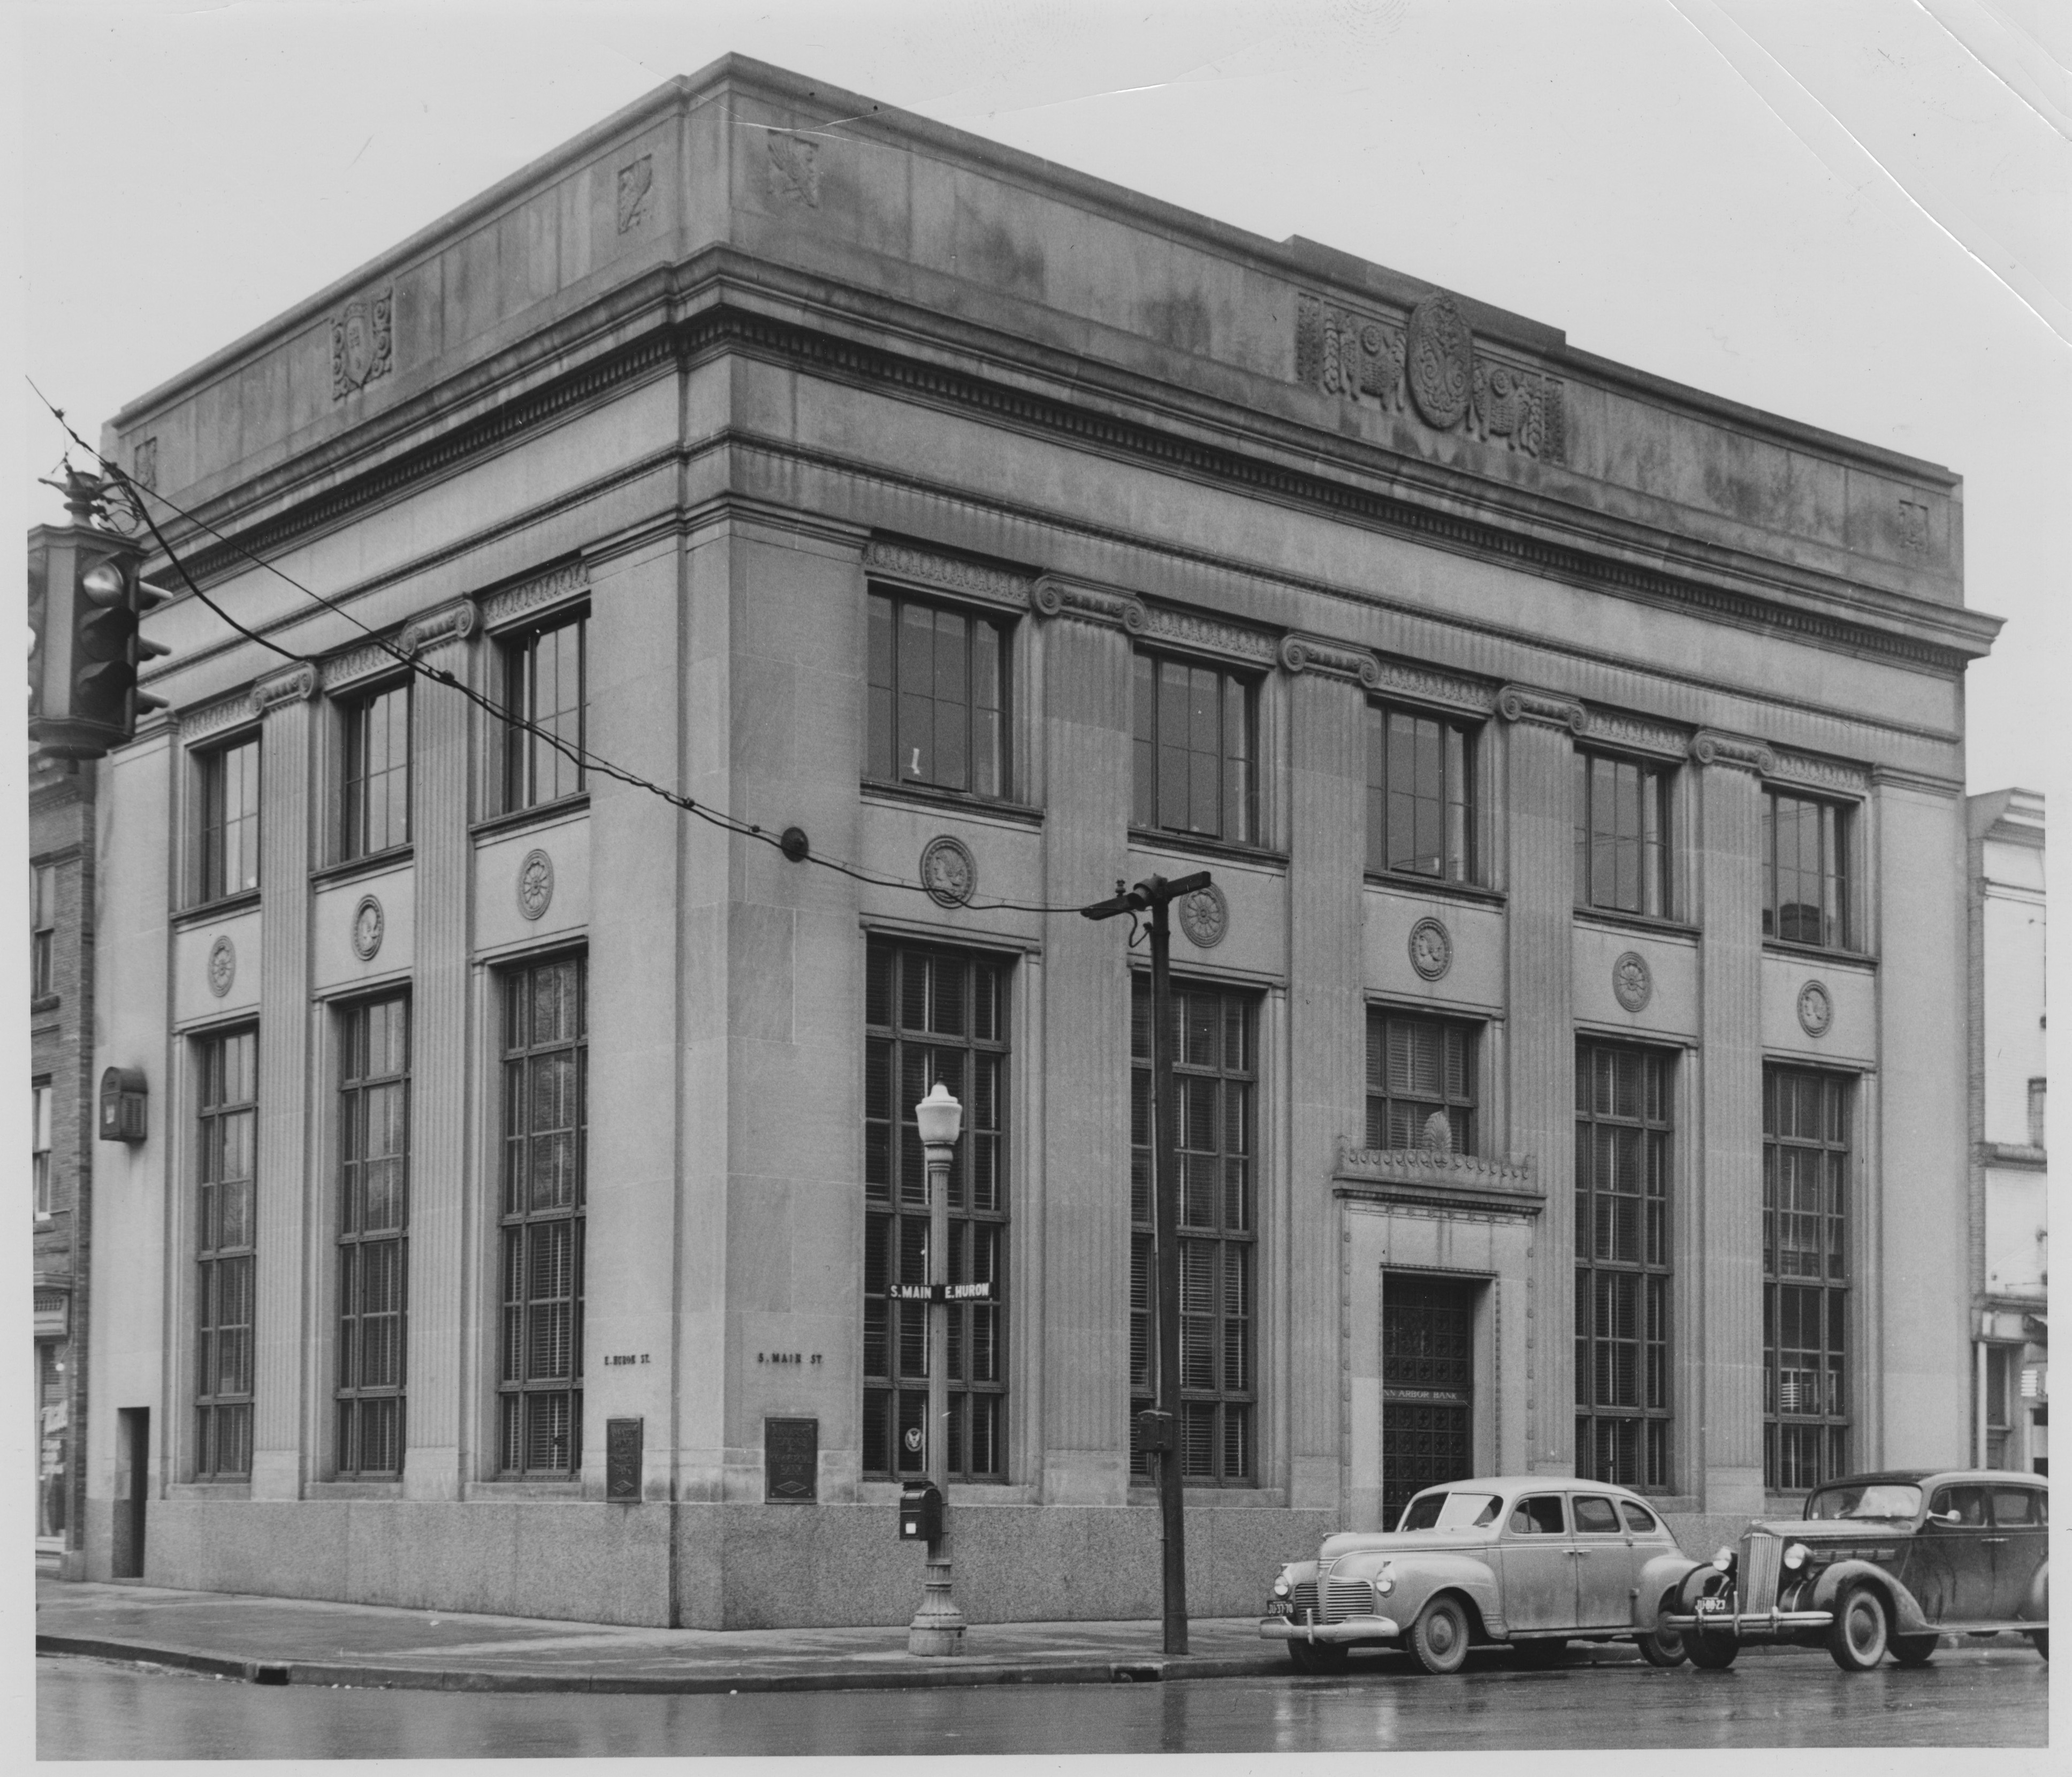 Ann Arbor Savings and Commercial Bank, former Farmers and Mechanic's Bank, corner Huron and Main, 1928 image